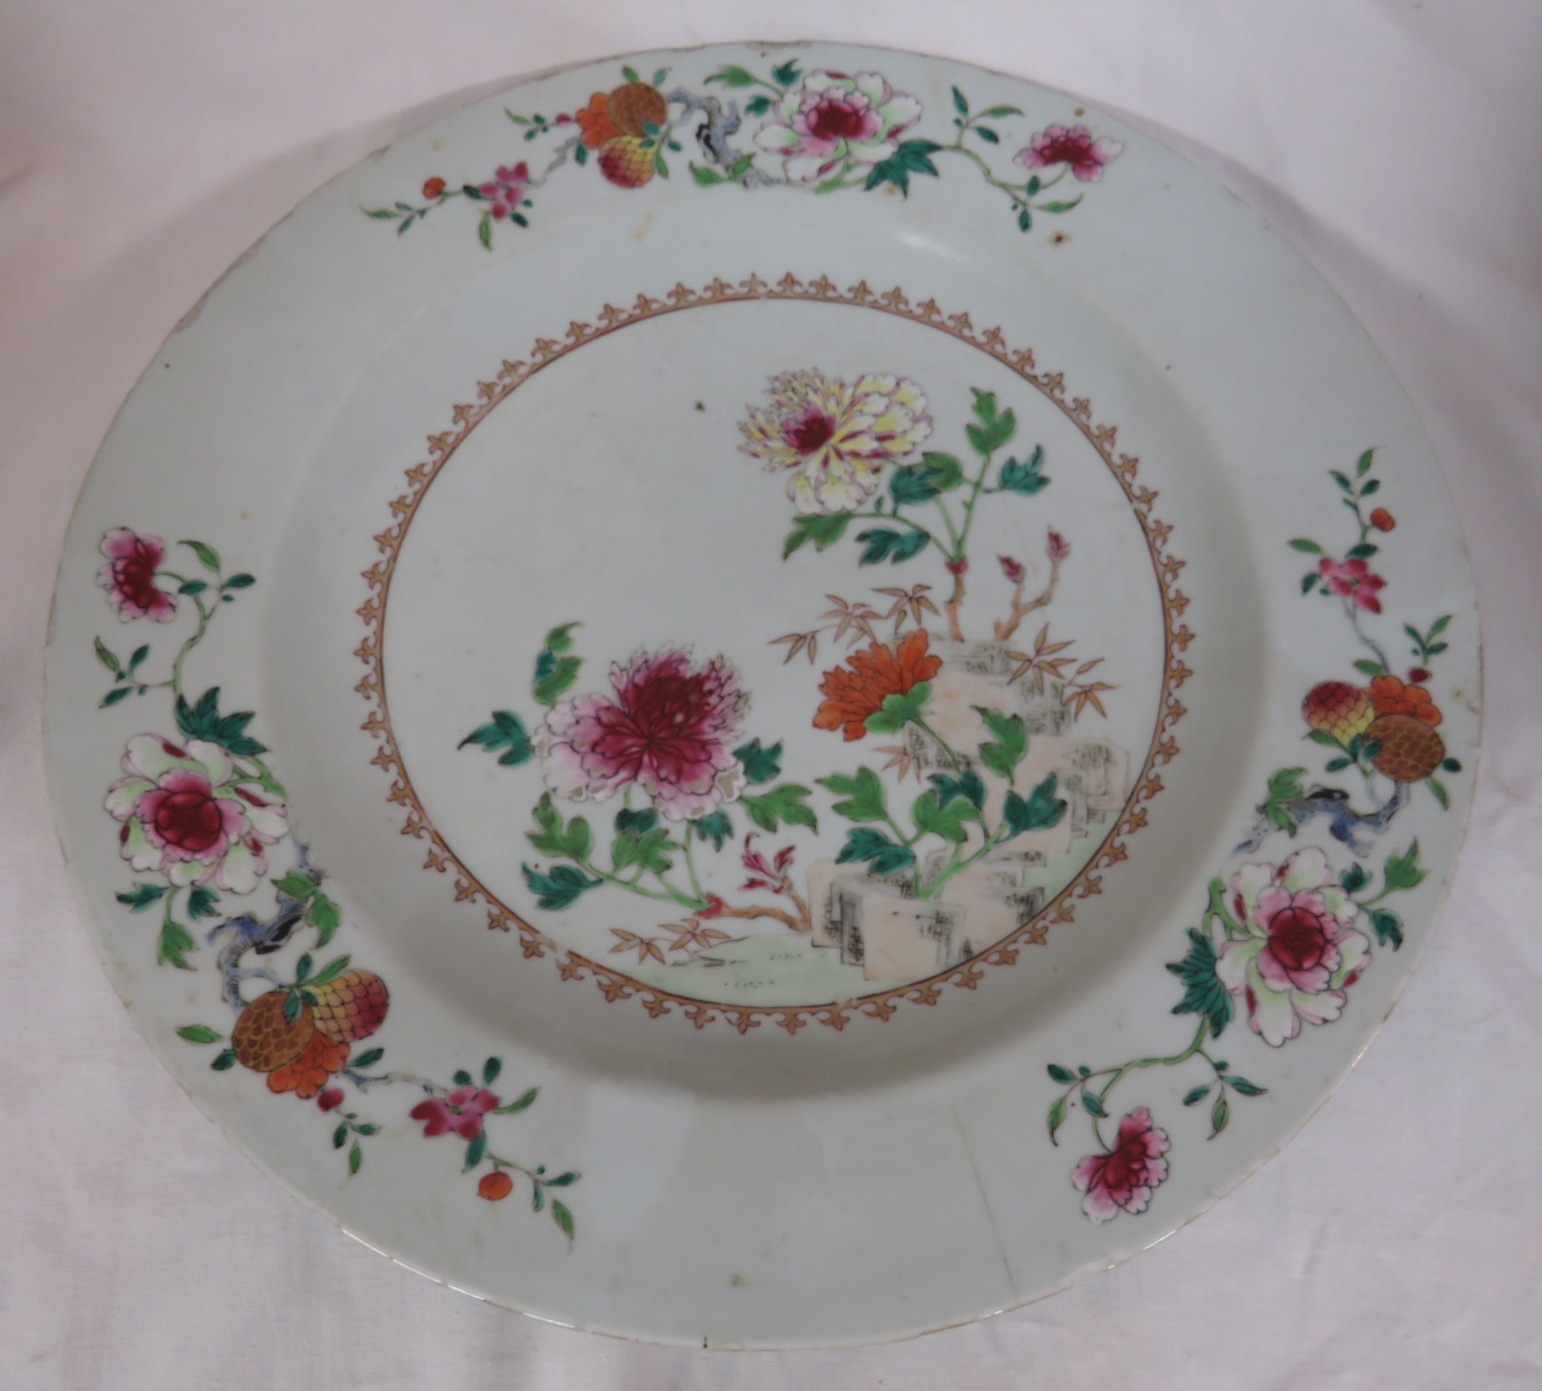 Lot 104 - A Chinese porcelain famille rose dish painted with flowering plants, the border with three